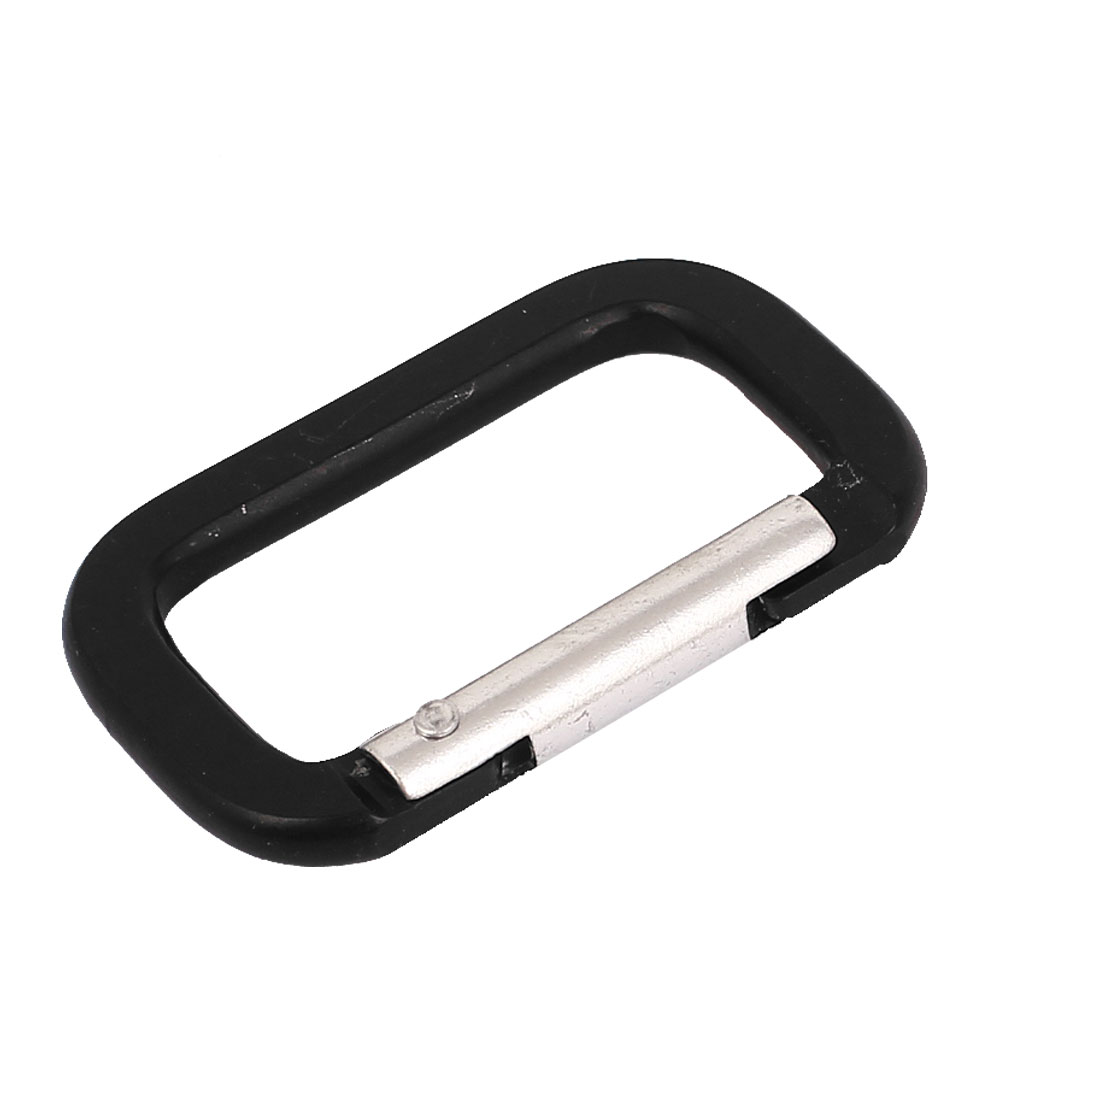 Aluminum Rectangle Shape Travel Camping Hiking Hook Keychain Carabiner Black